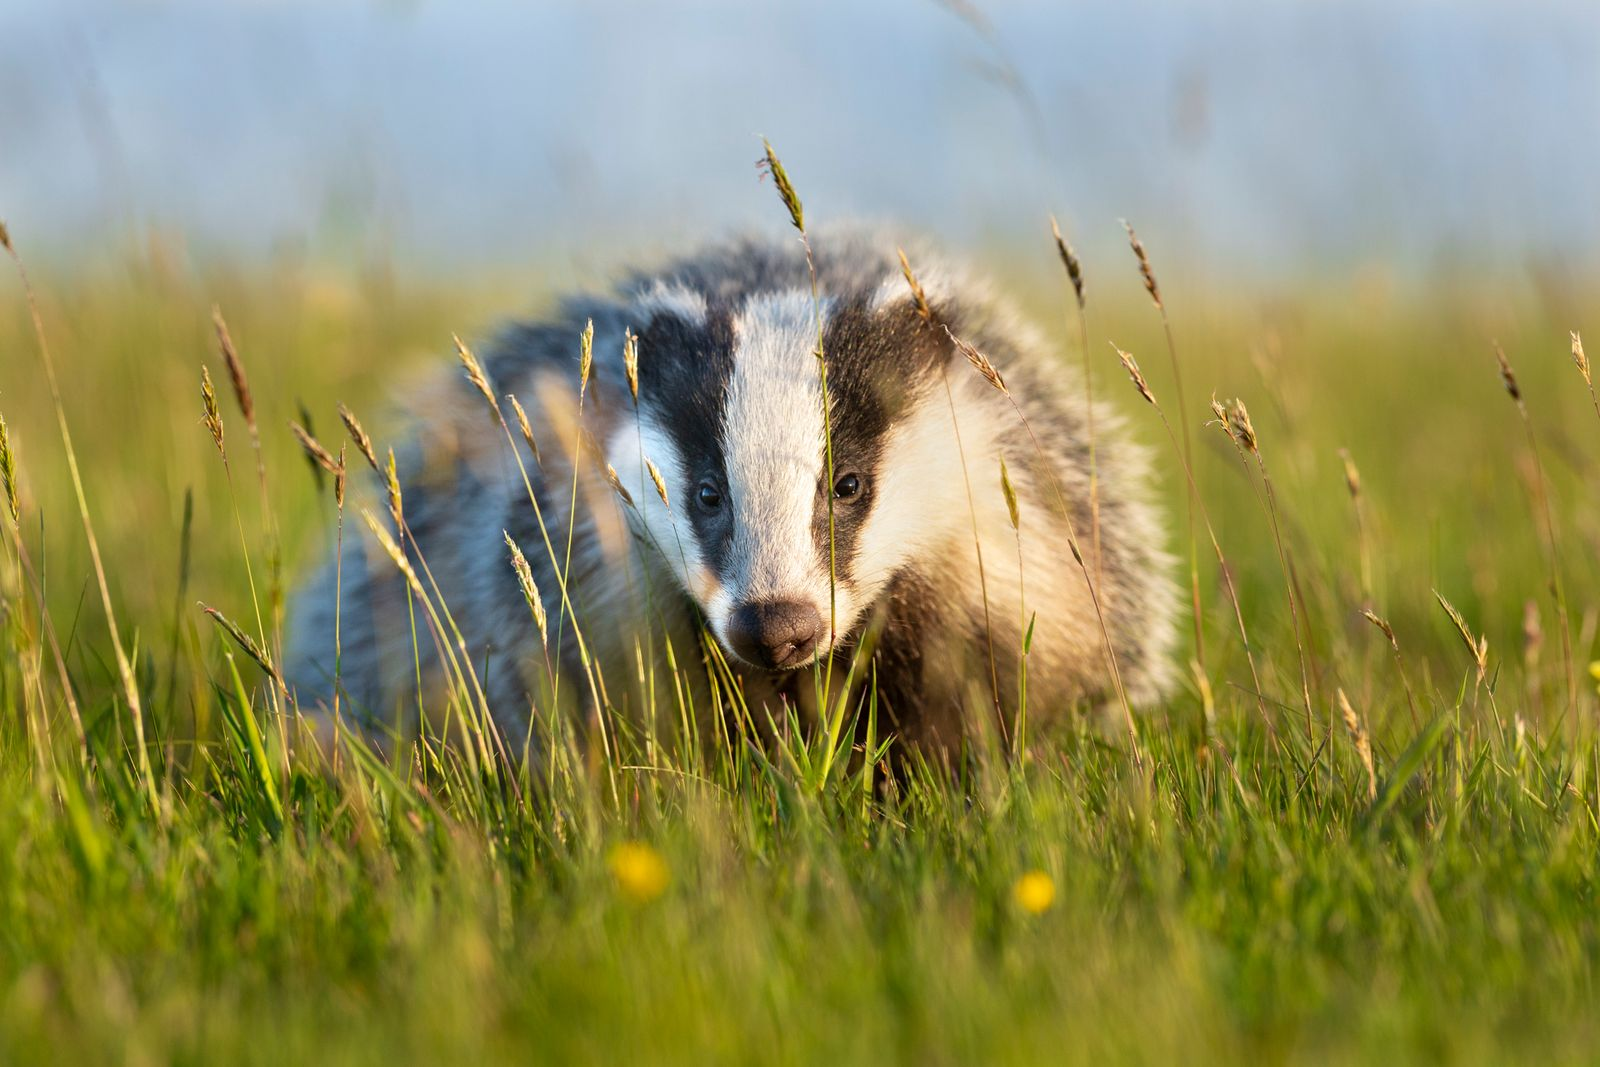 Badger Pose